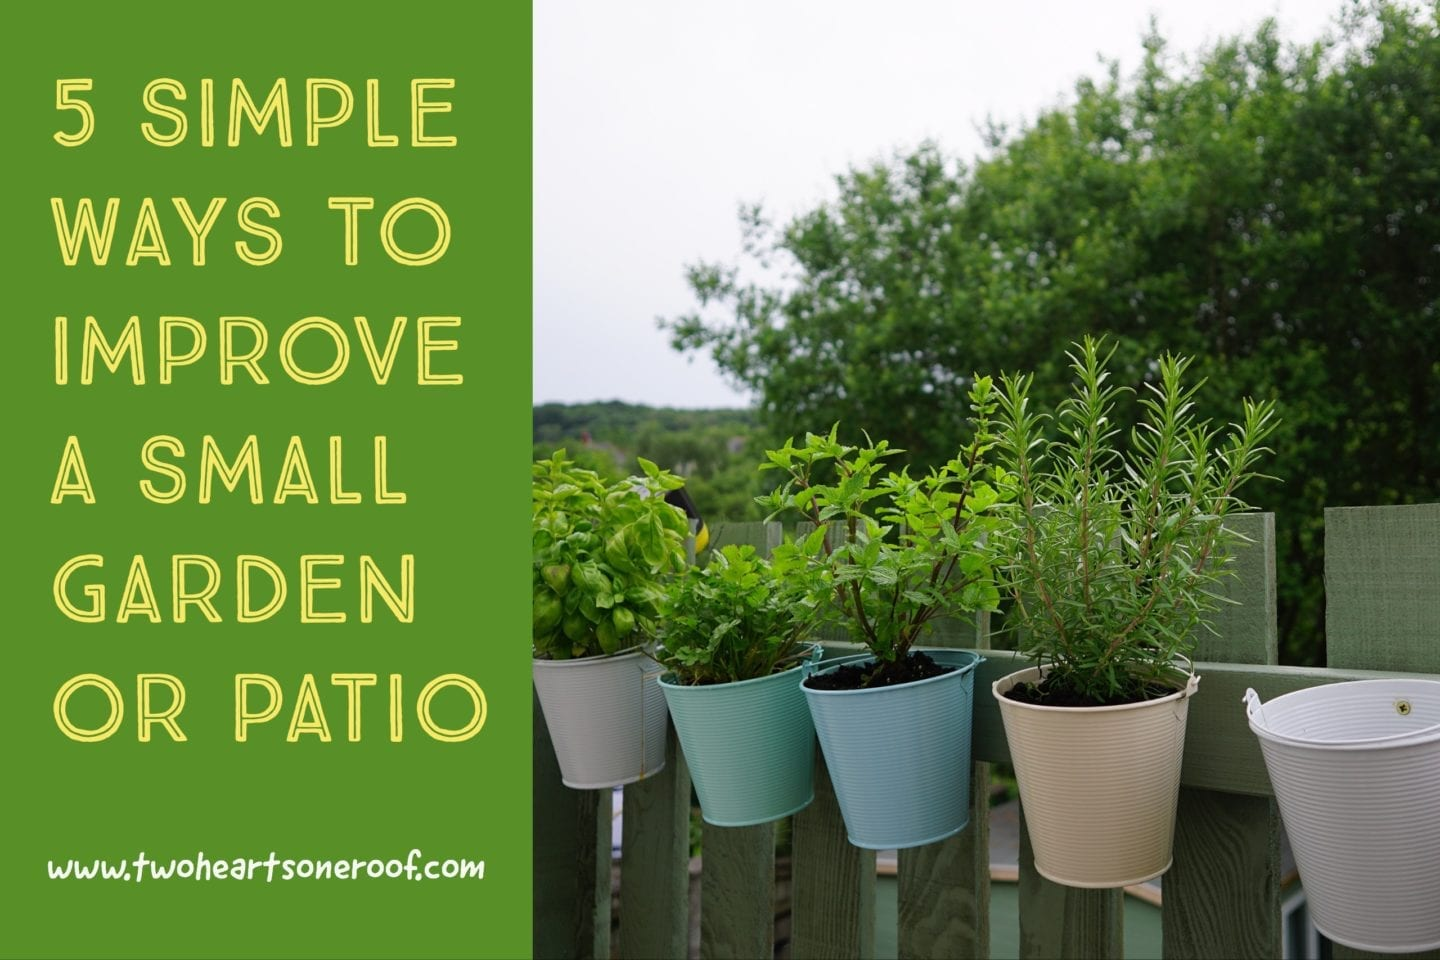 5 Simple Ways to Improve a Small Garden or Patio